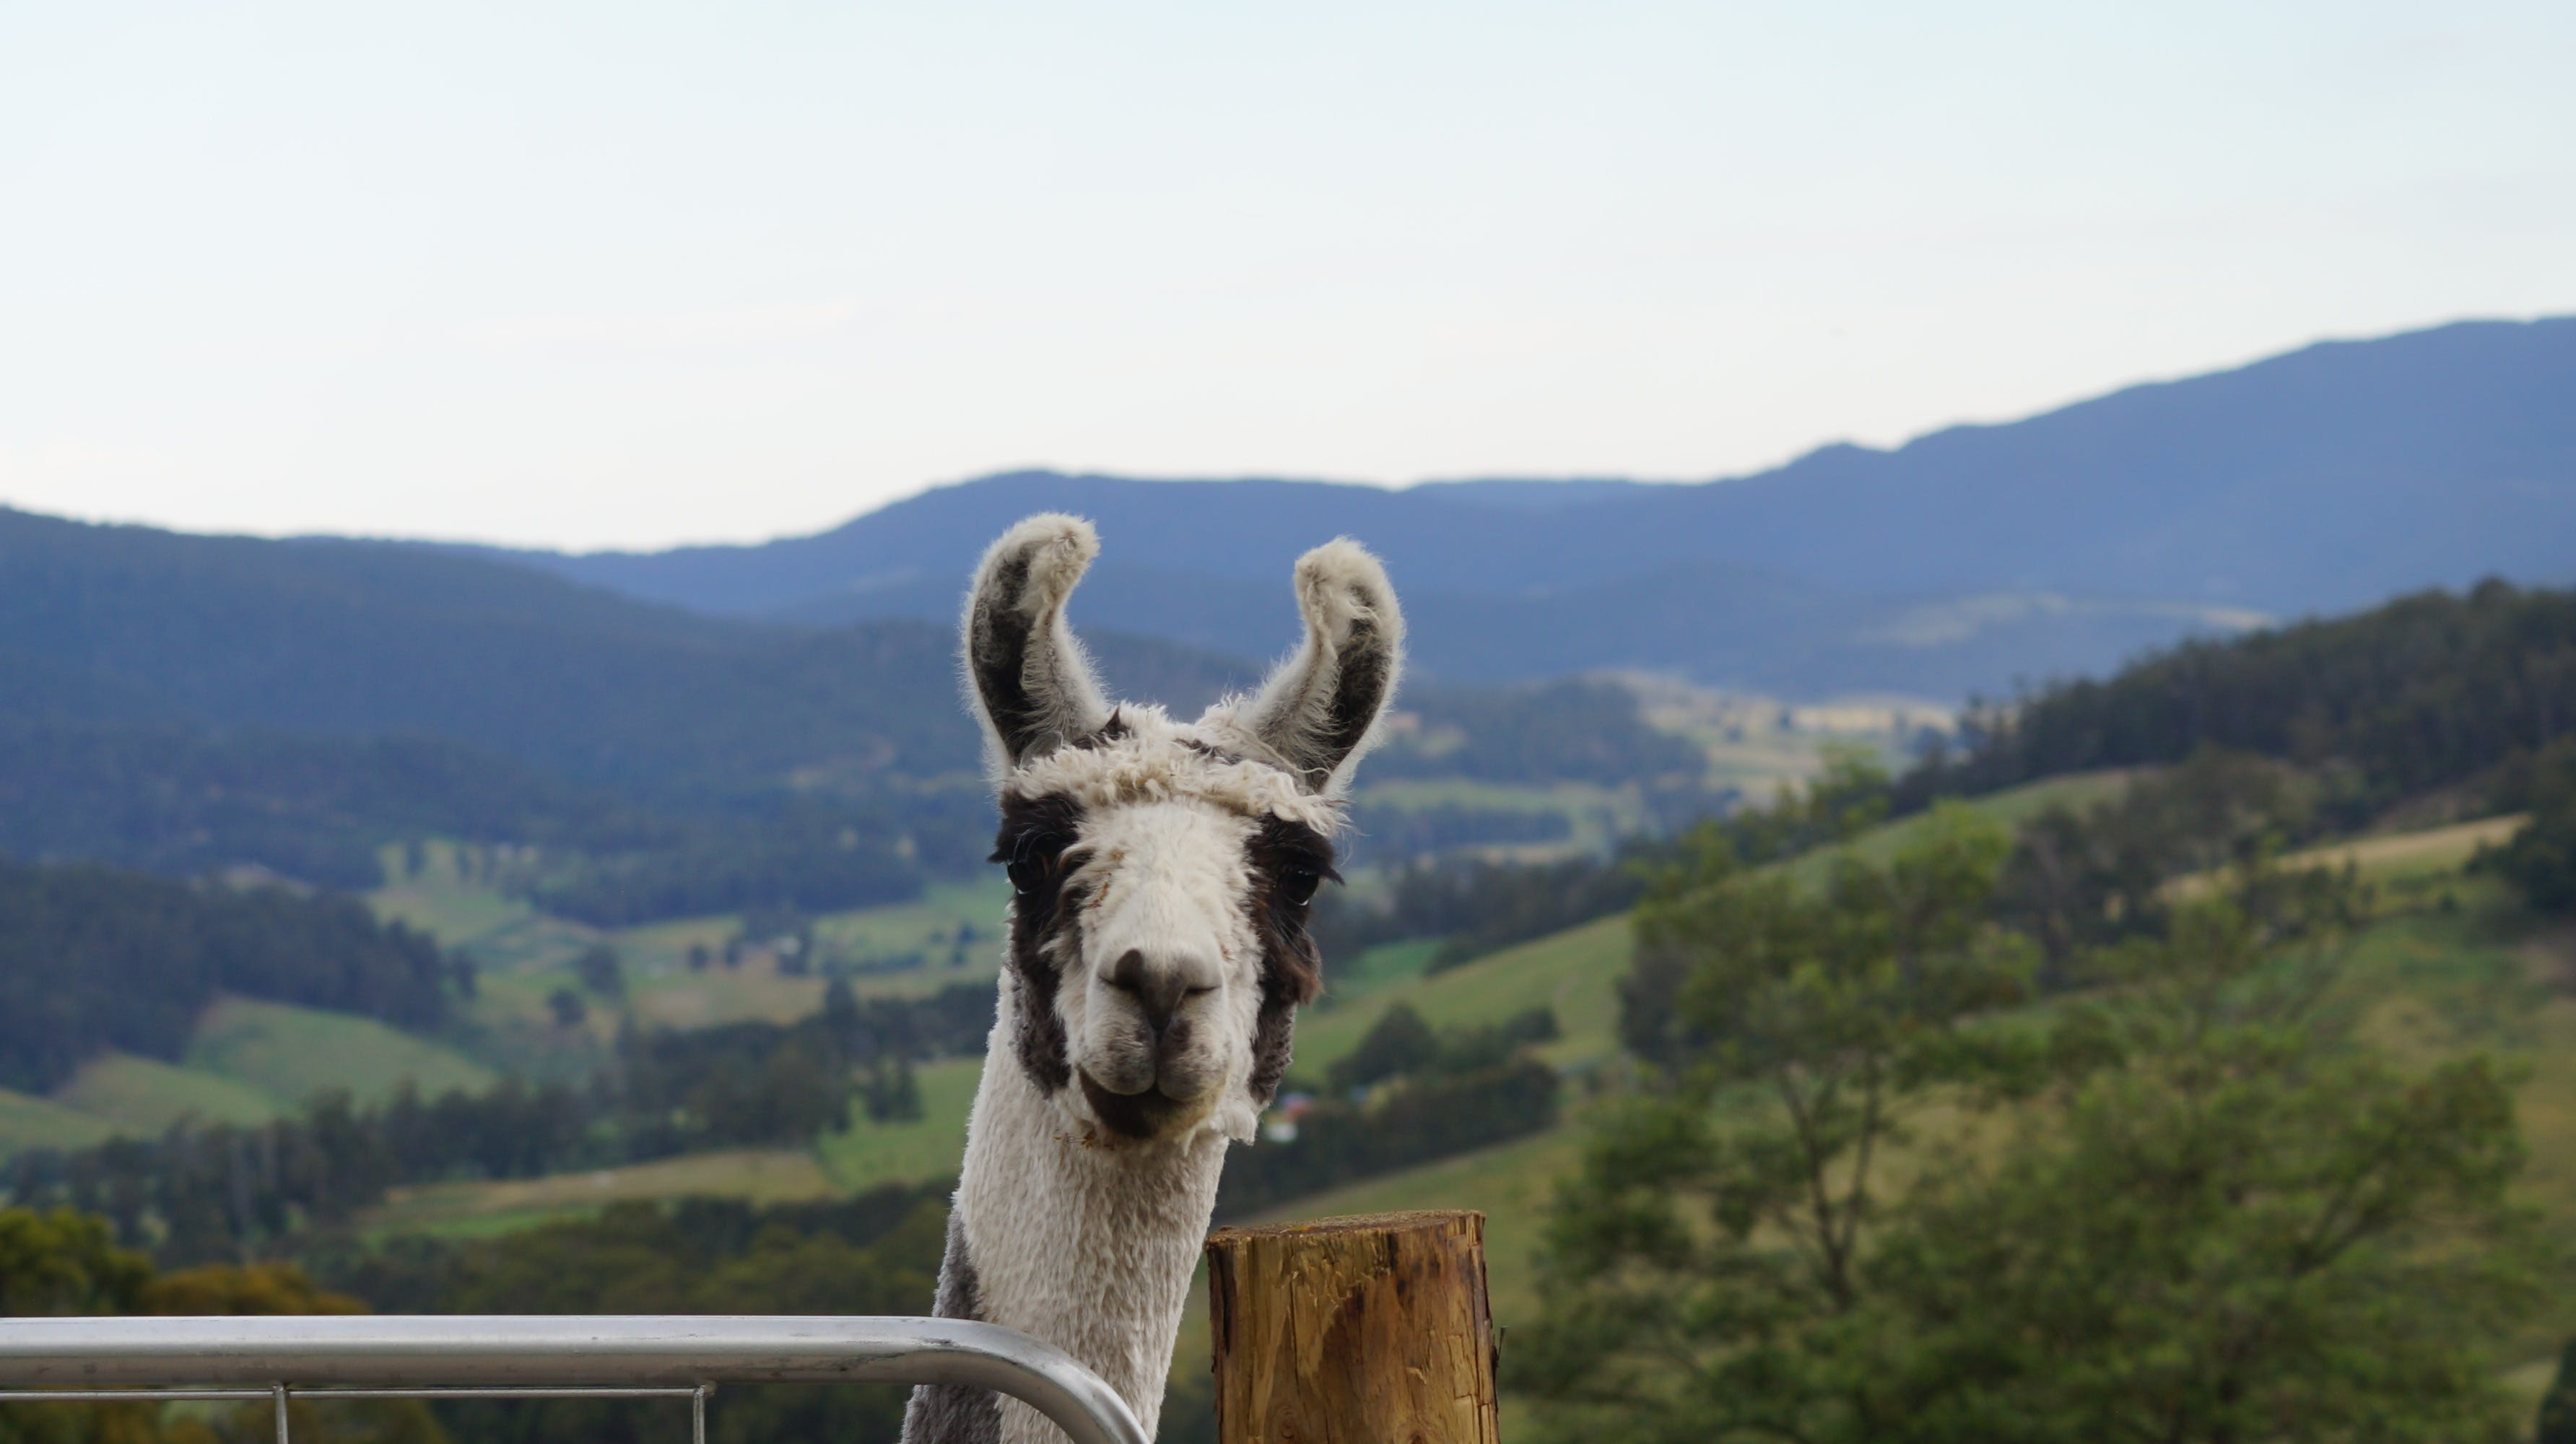 Llama Walks Tasmania - Wagga Wagga Accommodation